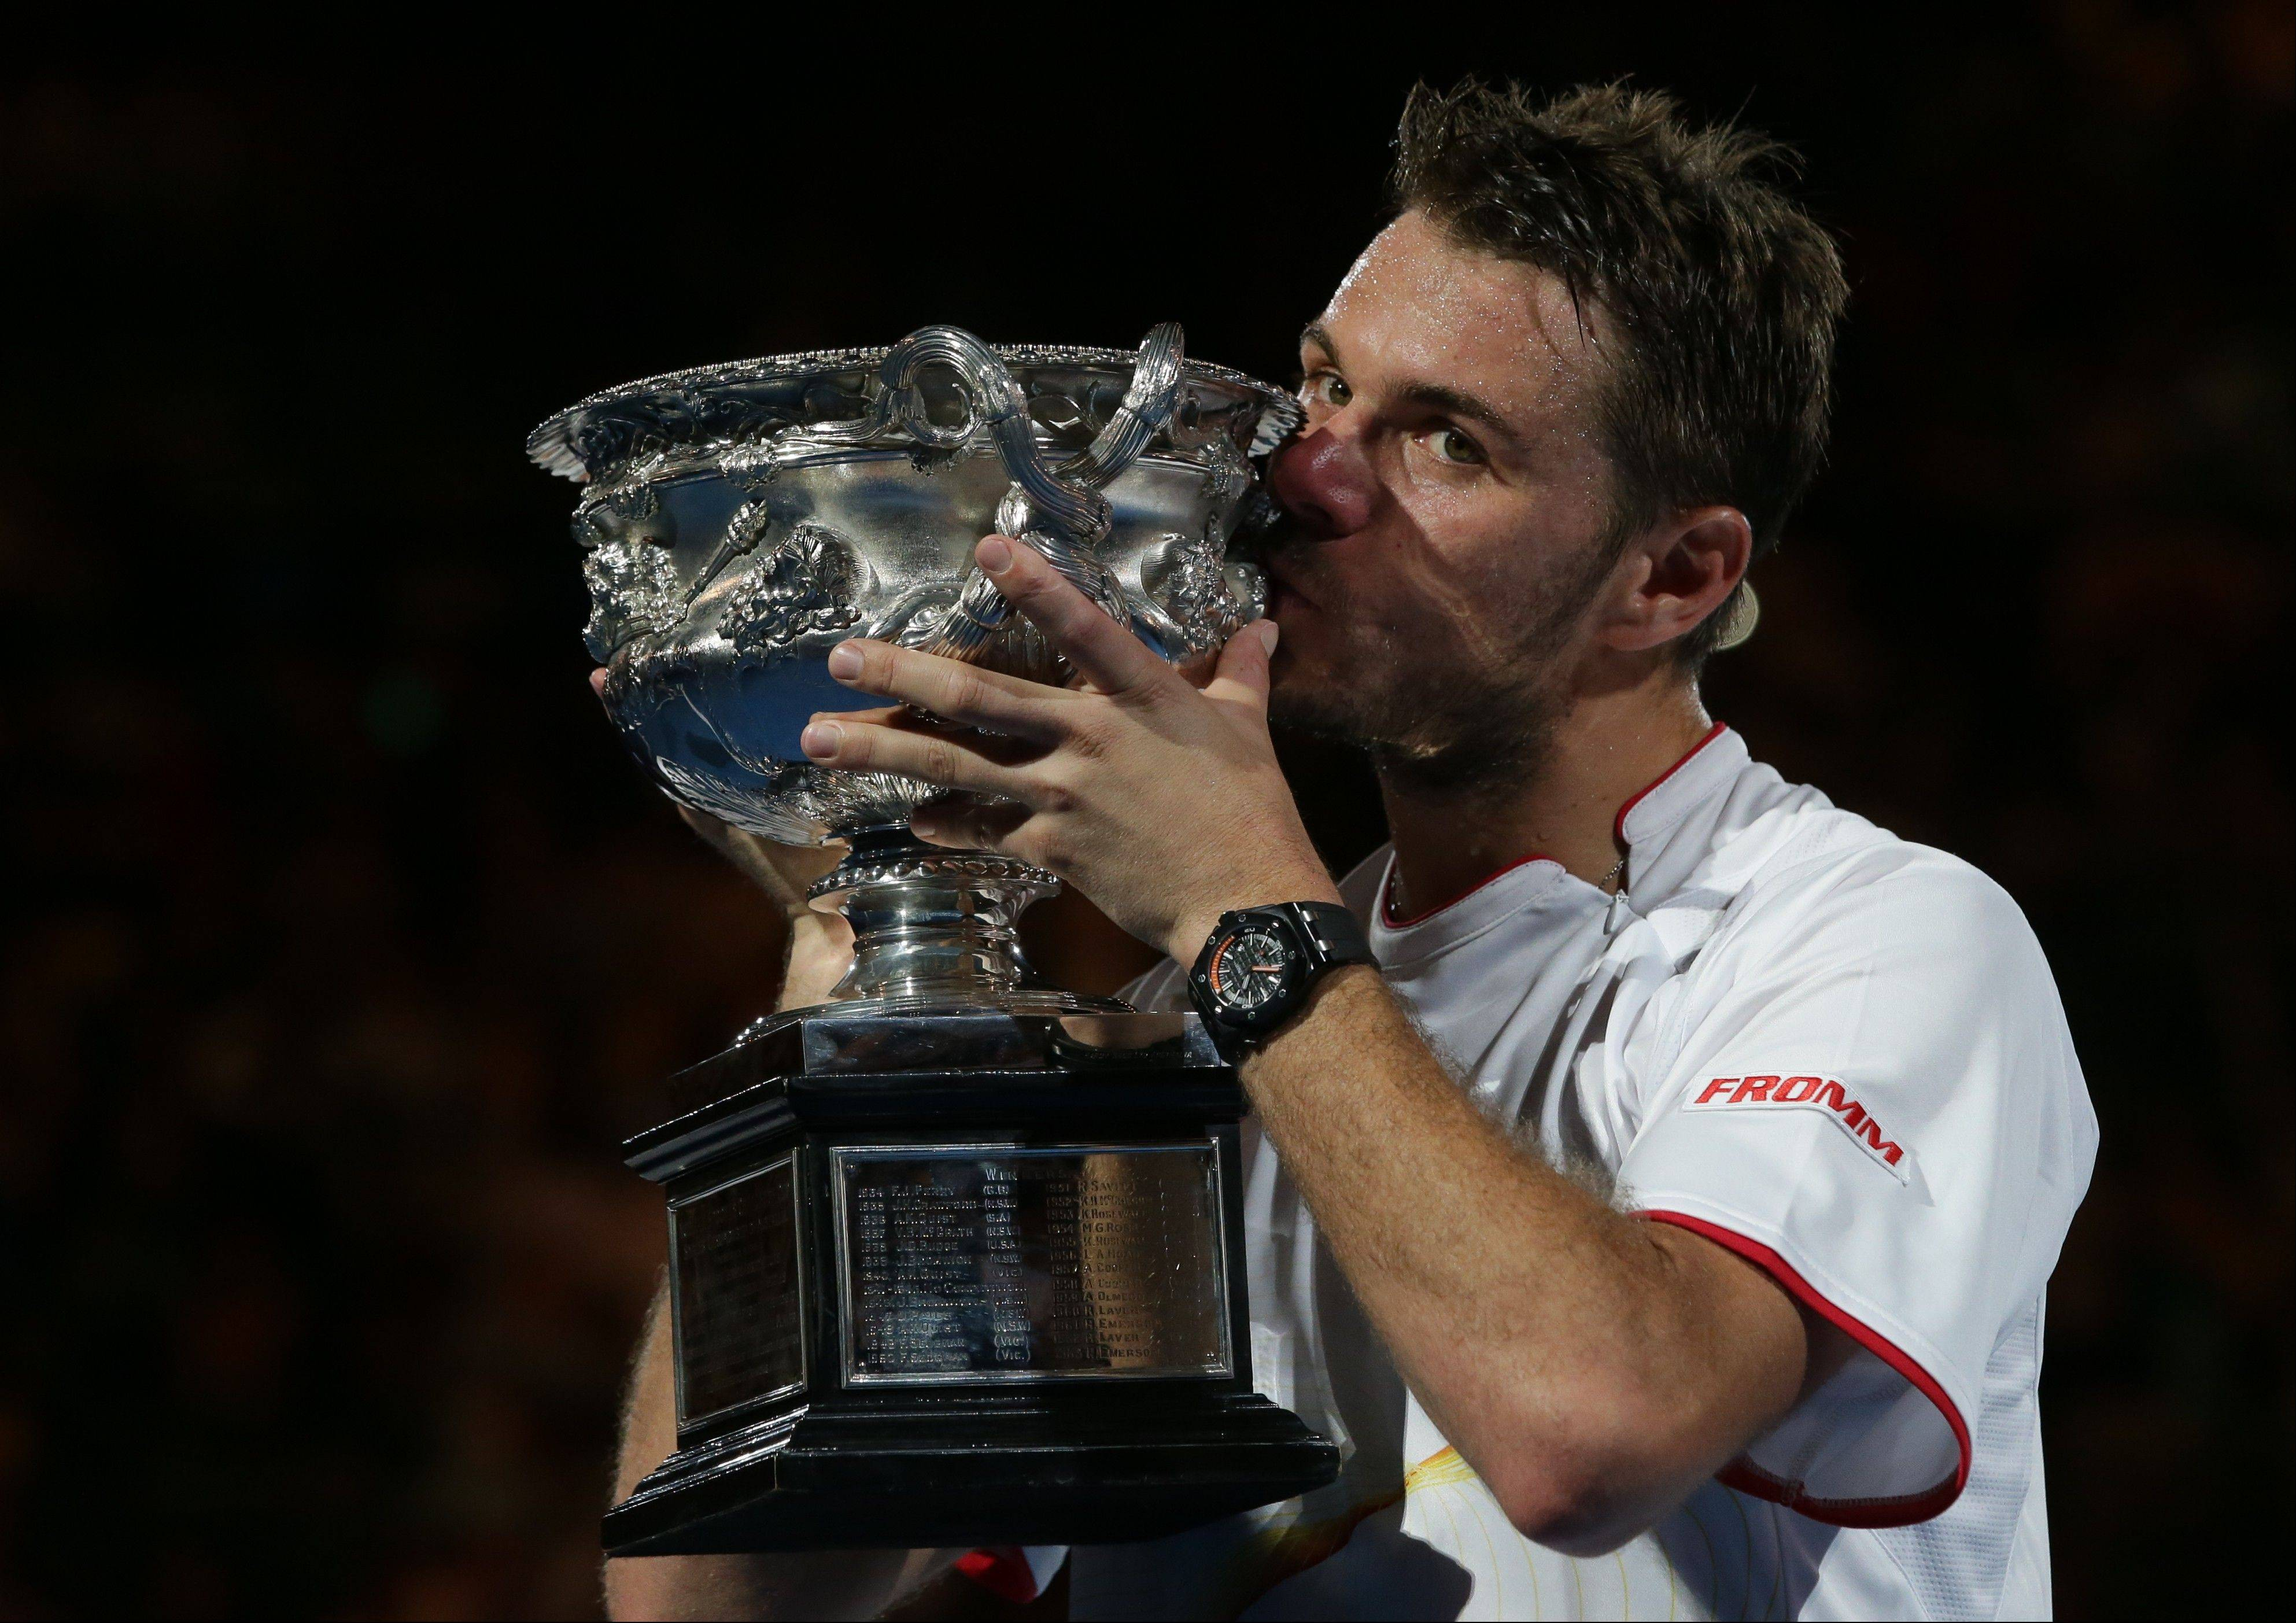 Stanislas Wawrinka of Switzerland kisses the trophy after defeating Rafael Nadal of Spain in the men's singles final at the Australian Open tennis championship in Melbourne, Australia, Sunday.